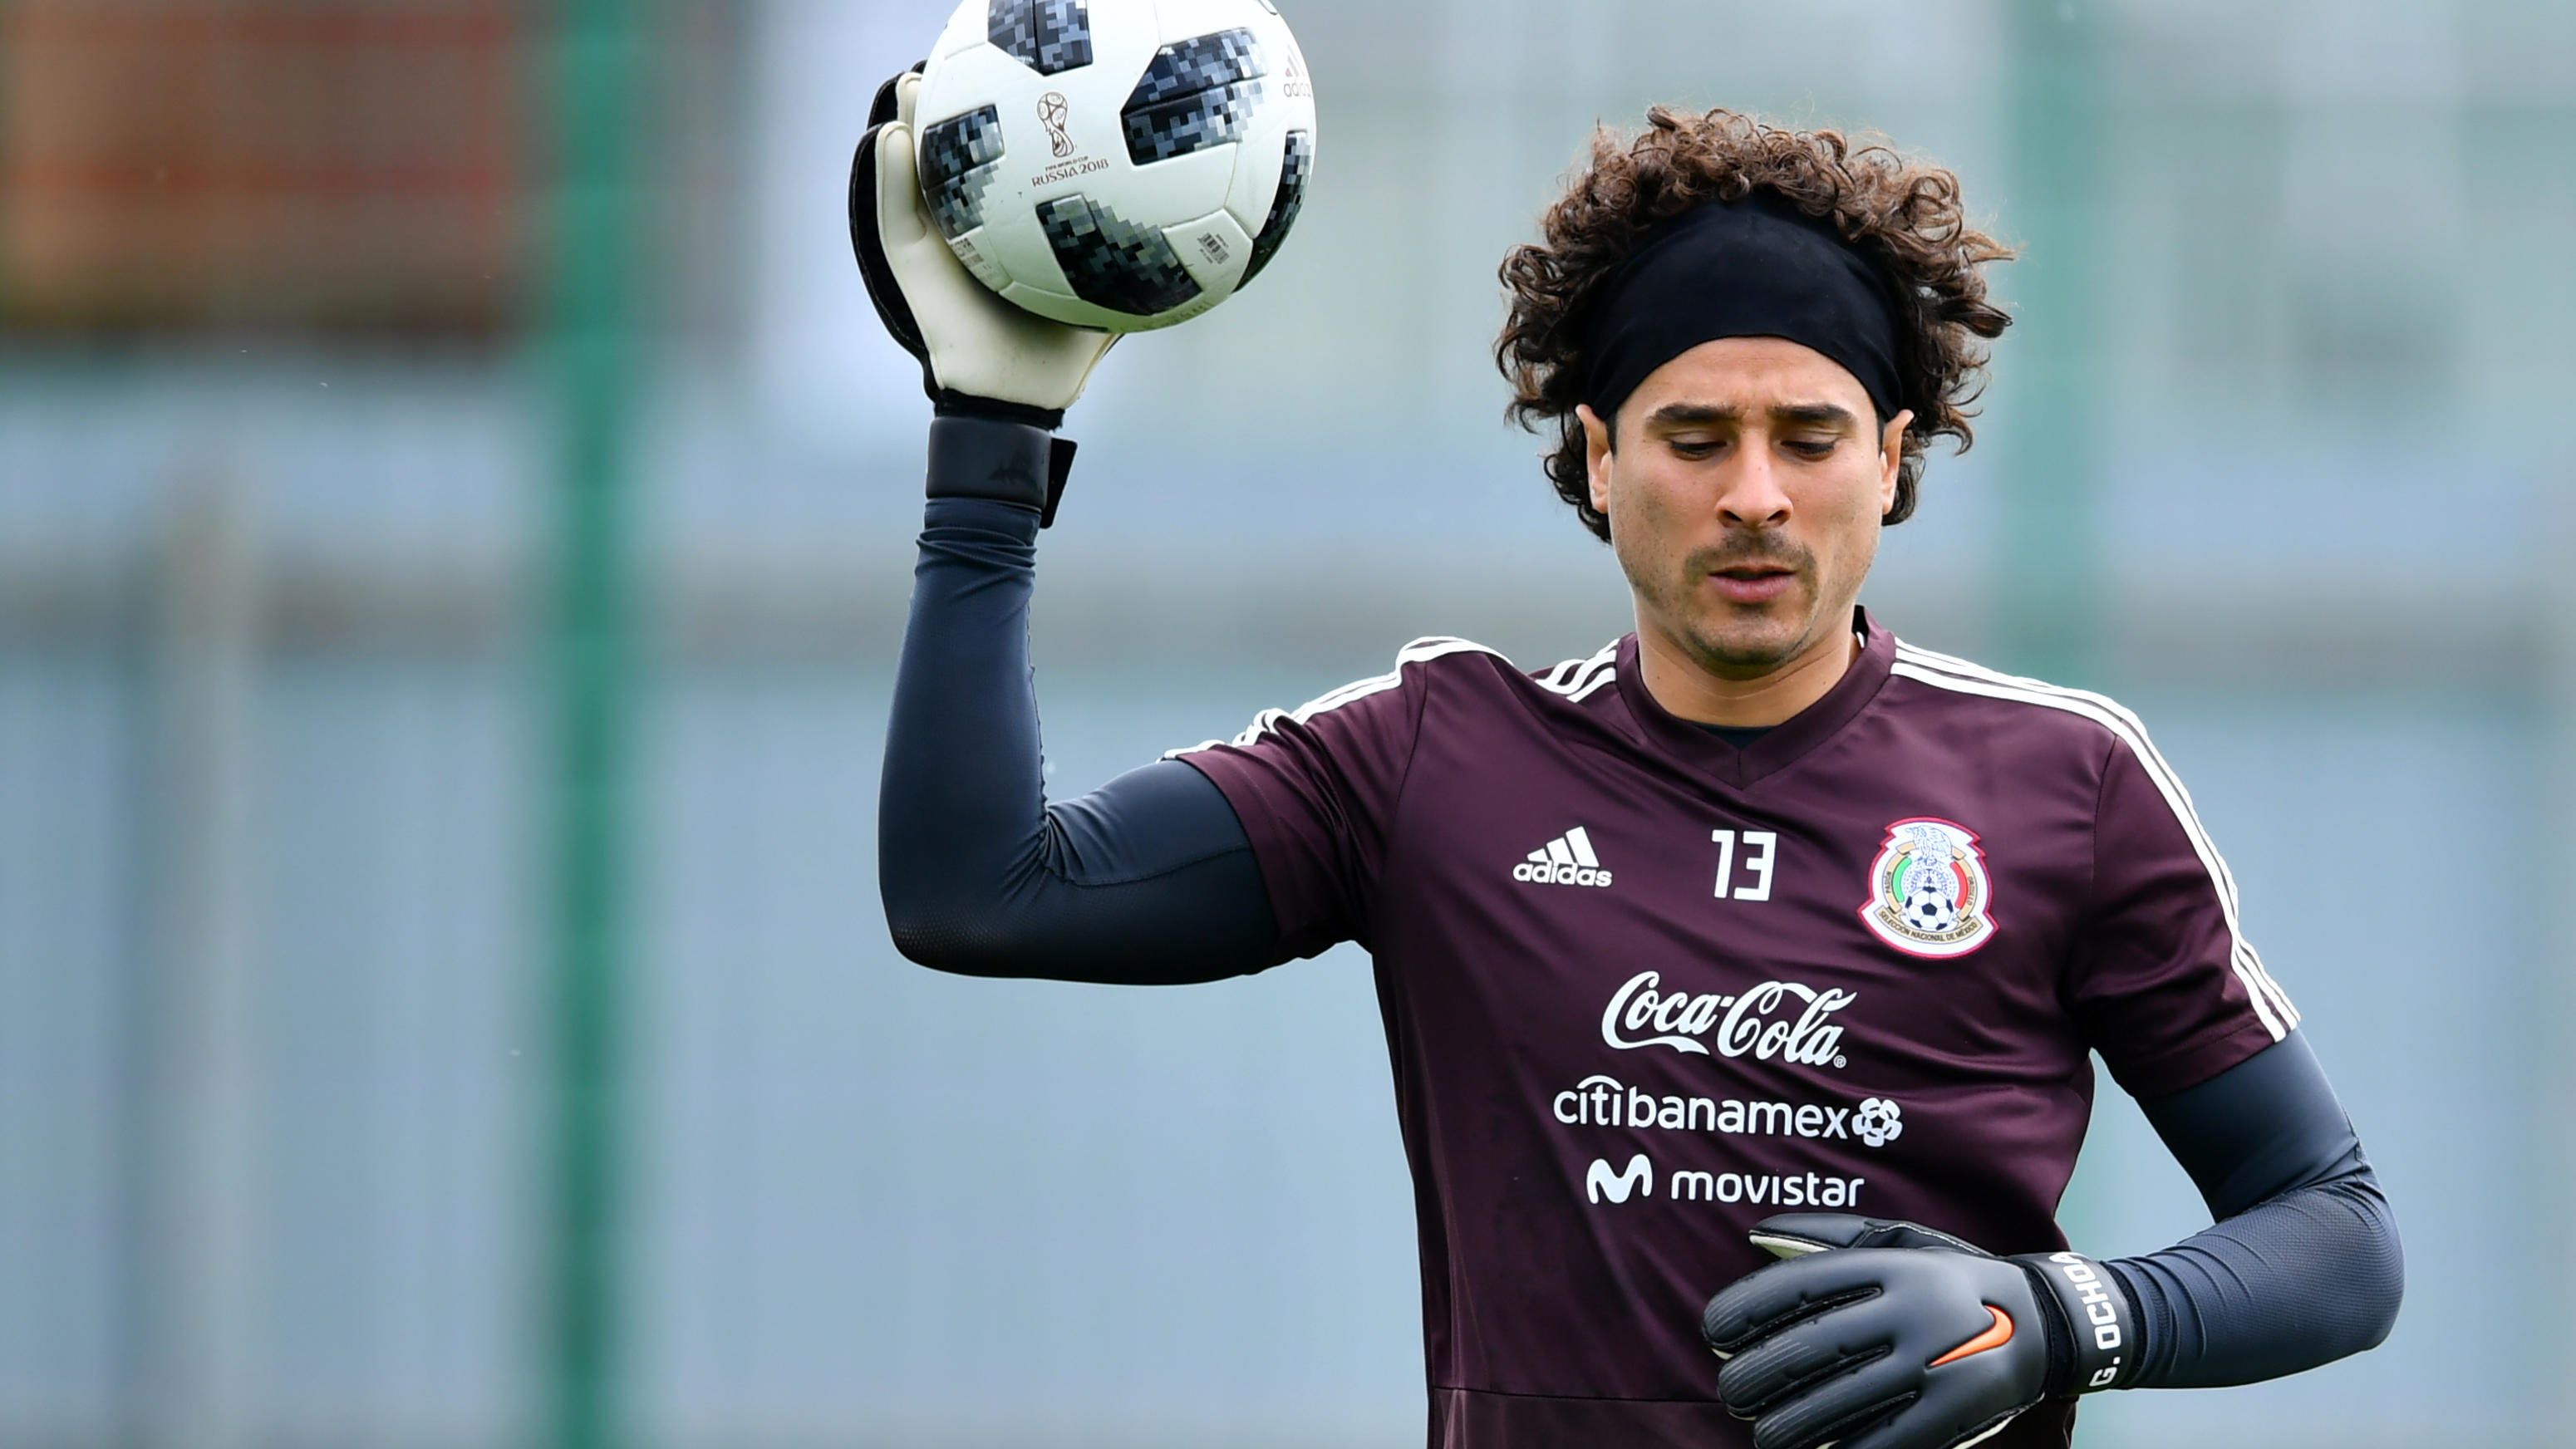 MOSCOW, RUSSIA - JUNE 14: Guillermo Ochoa of Mexico, holds a ball during a training session at team training base Novogorsk-Dynamo on June 14, 2018 in Moscow, Russia. (Photo by Hector Vivas/Getty Images)